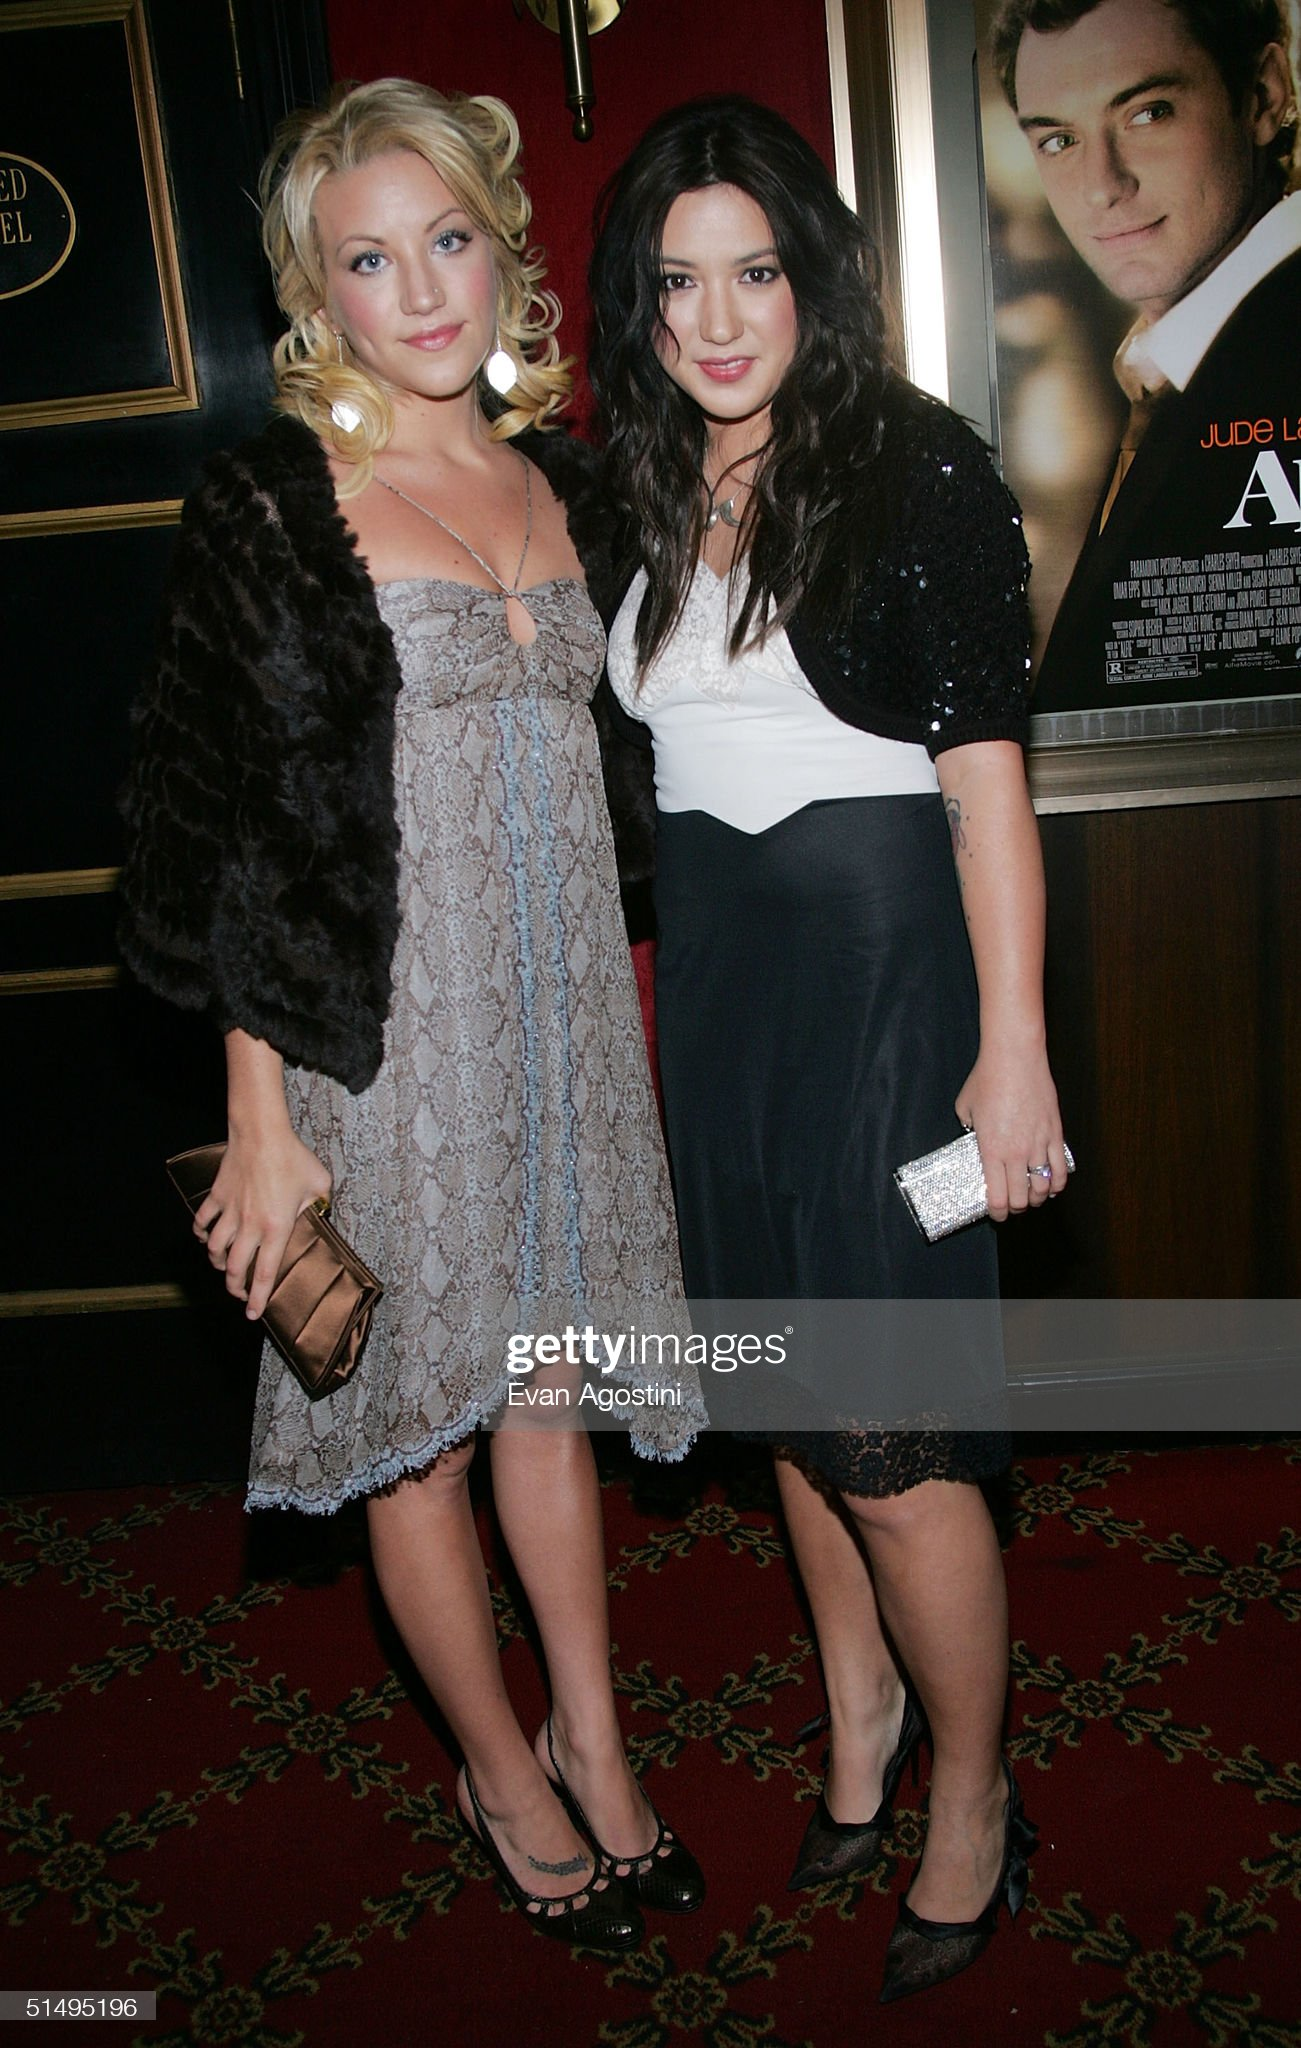 ¿Cuánto mide Michelle Branch? - Altura - Real height Musician-michelle-branch-and-bandmate-jessica-harp-attend-the-new-picture-id51495196?s=2048x2048